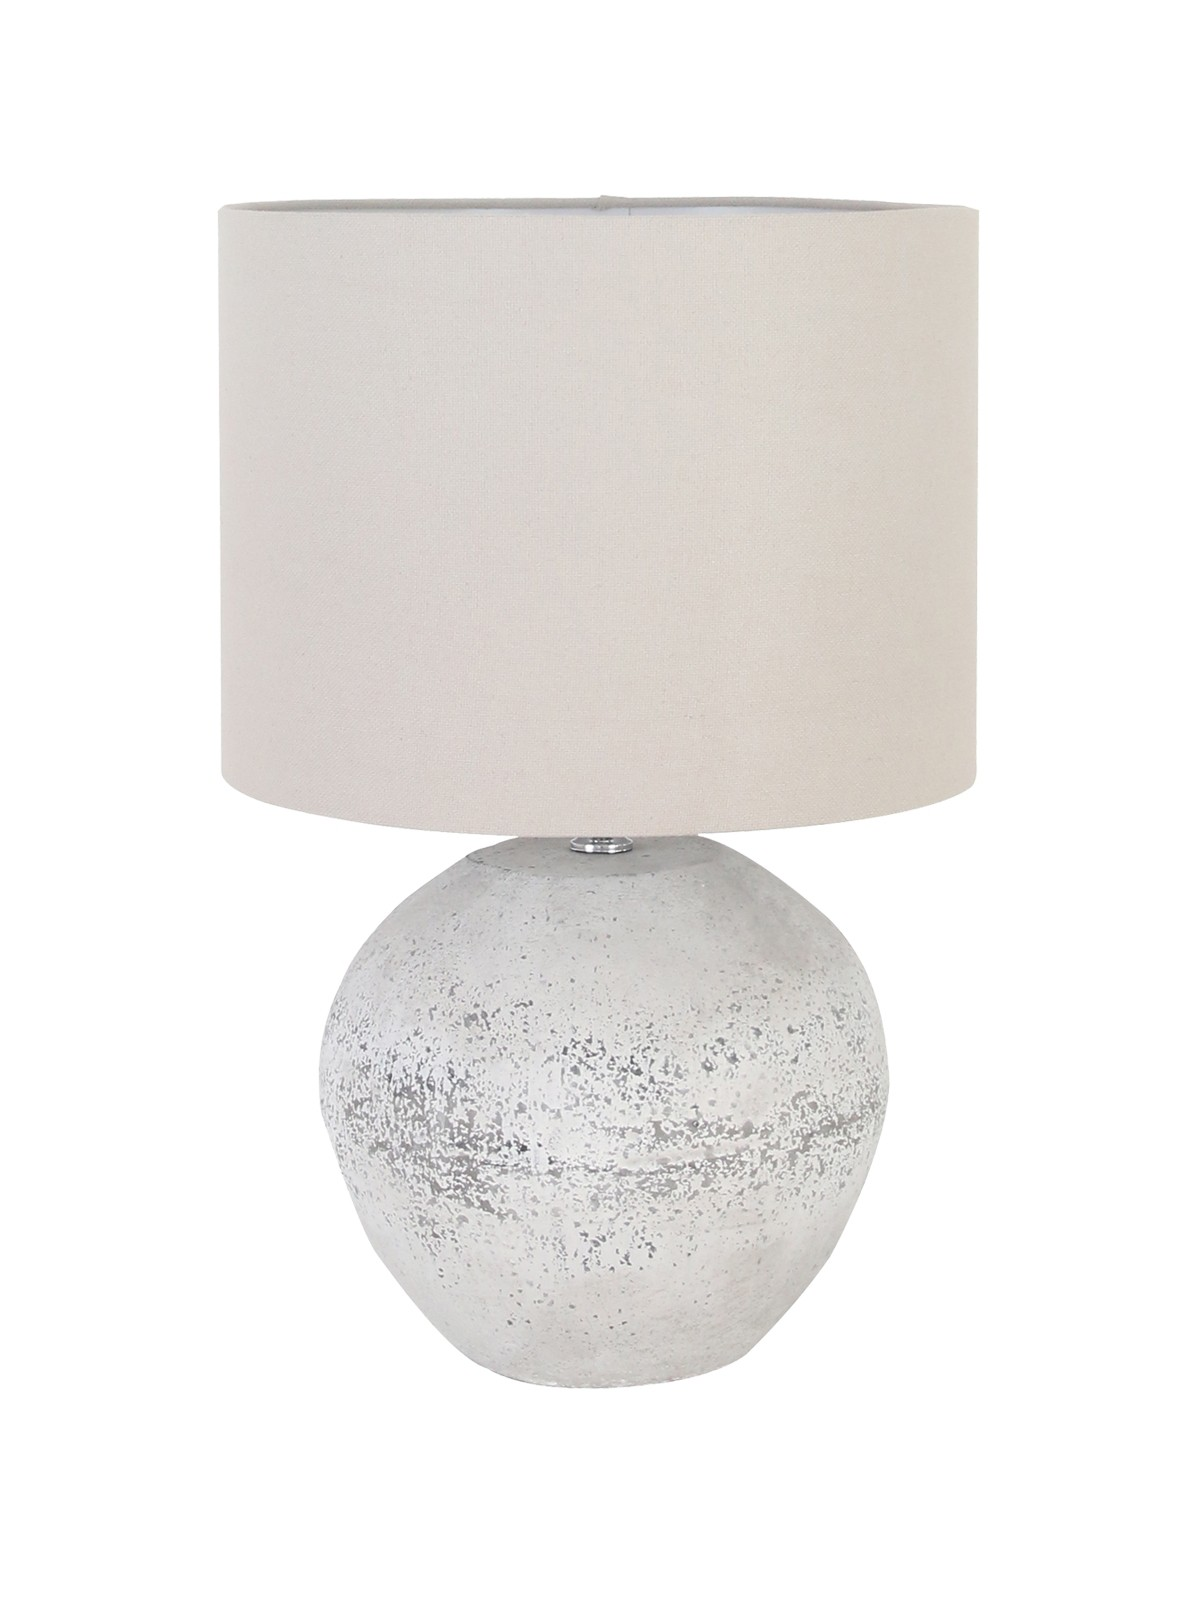 Mavis 1 Light Small Table Lamp in Antique Grey by Beacon Lighting, a Table & Bedside Lamps for sale on Style Sourcebook